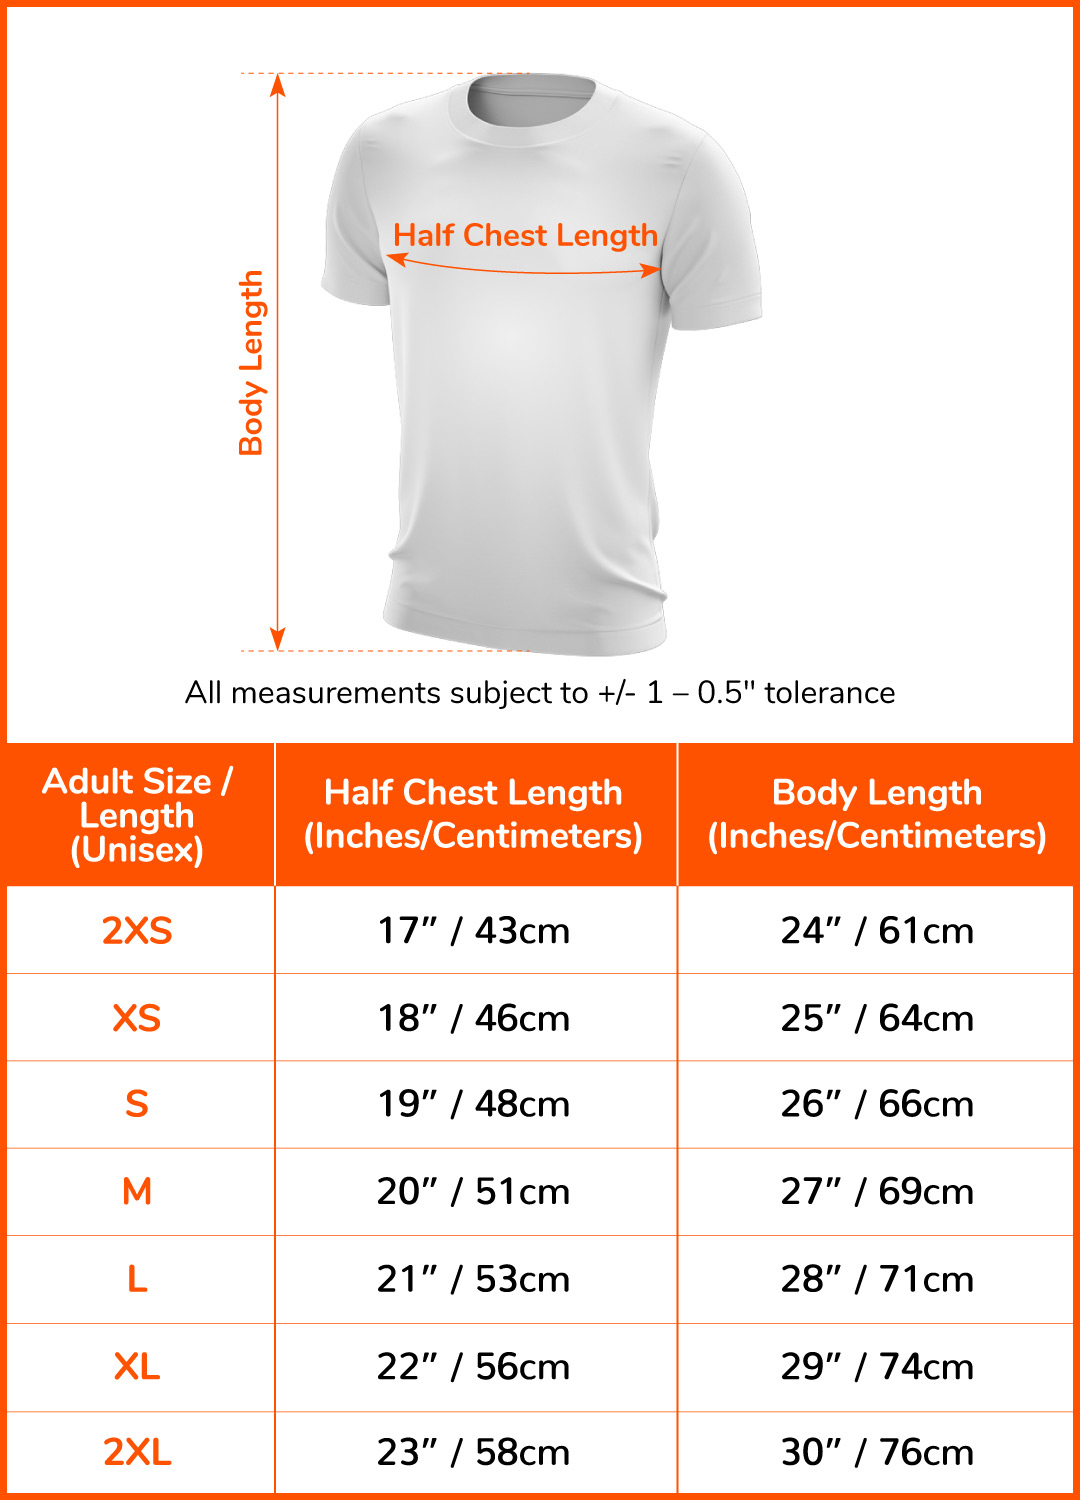 Finisher T-Shirt - 67km#size-chart